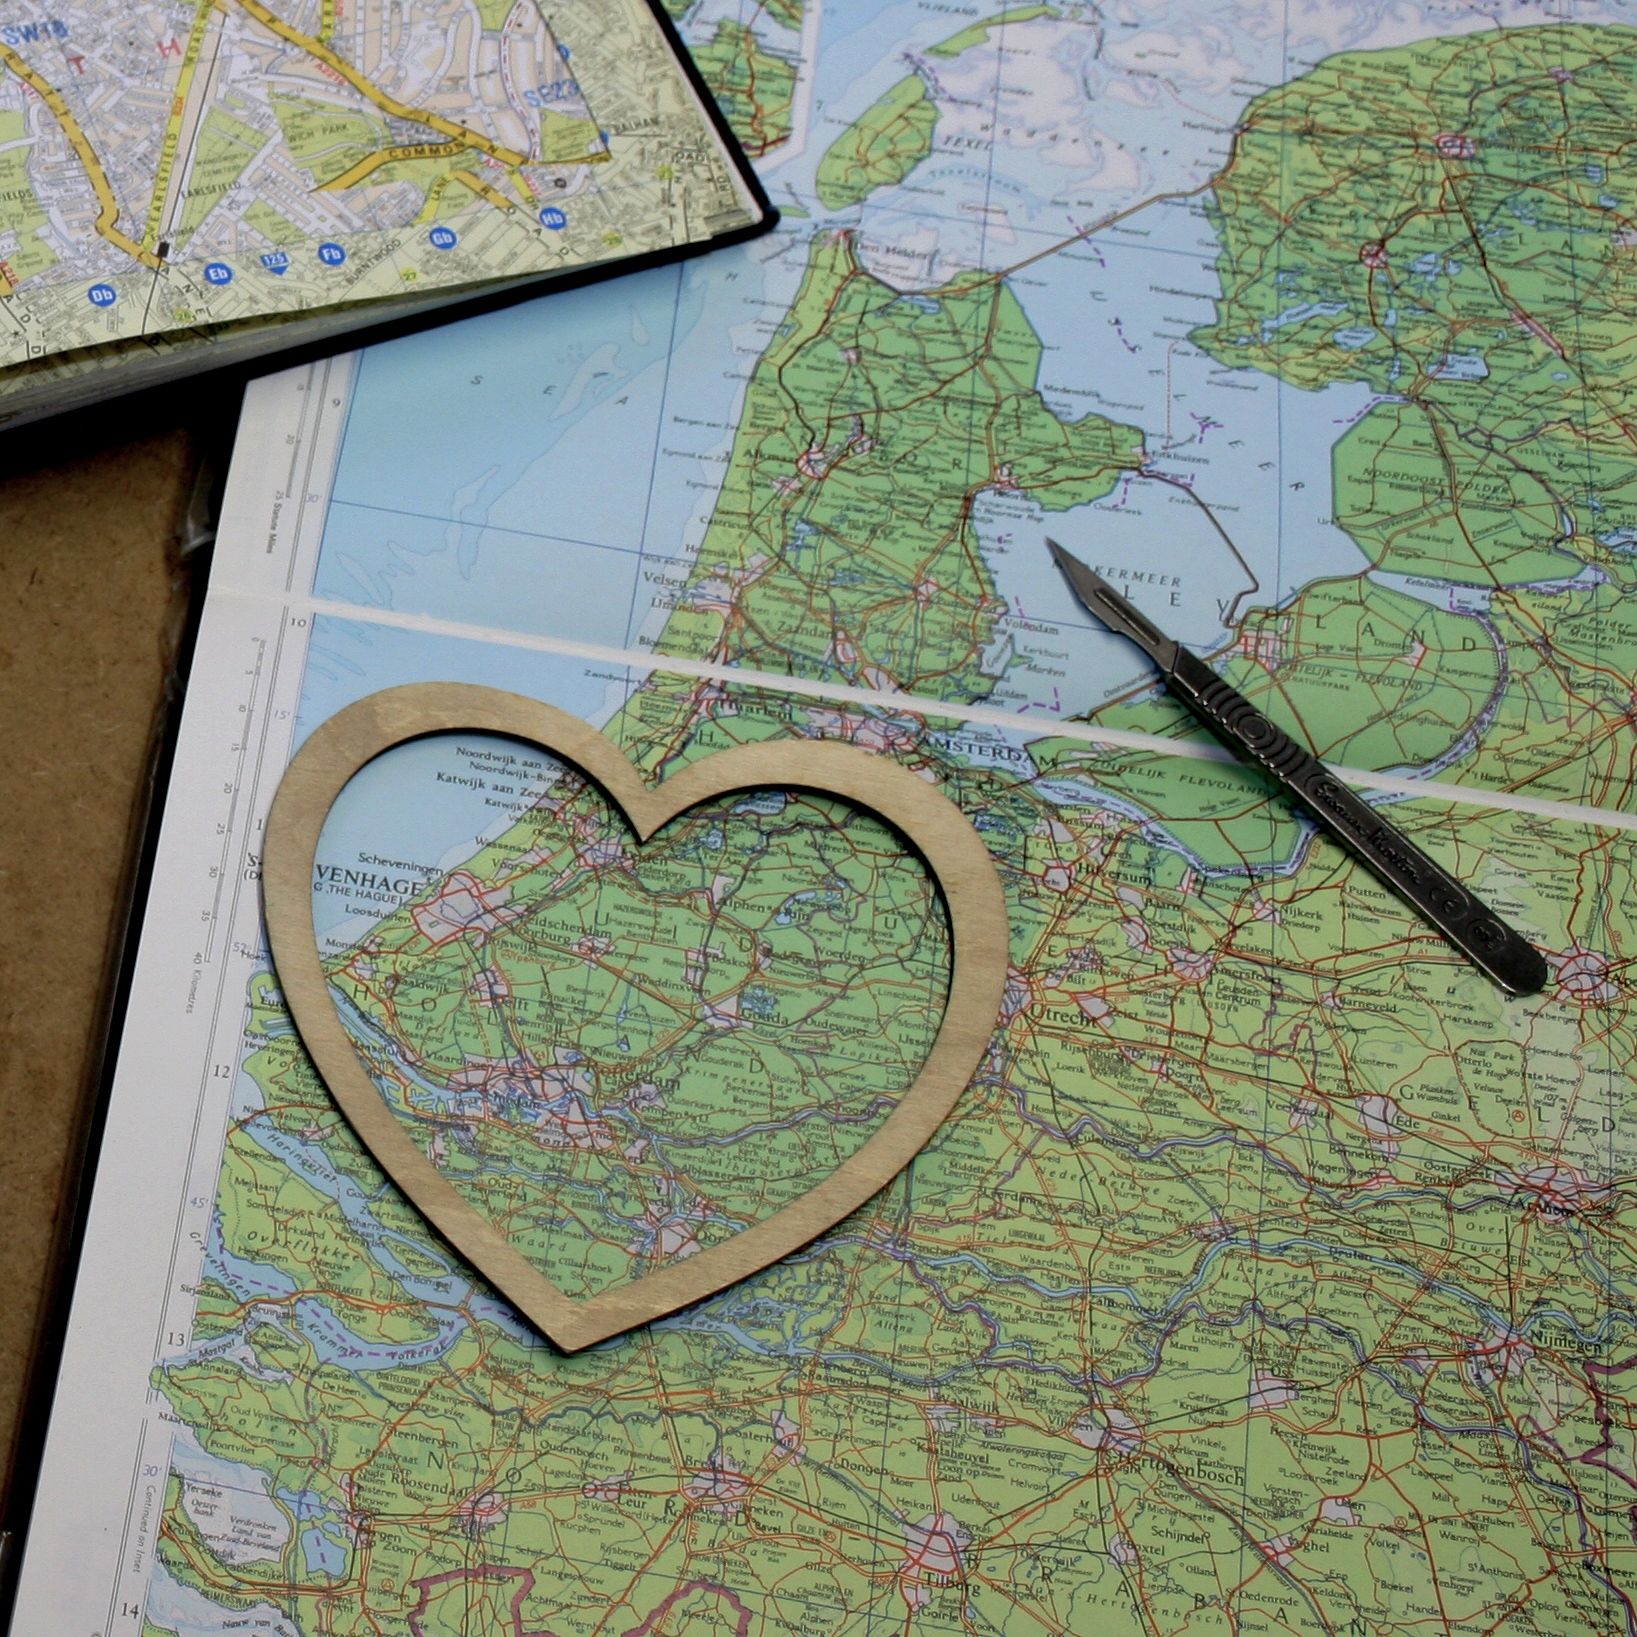 Heart stencil on a green map with scalpel.